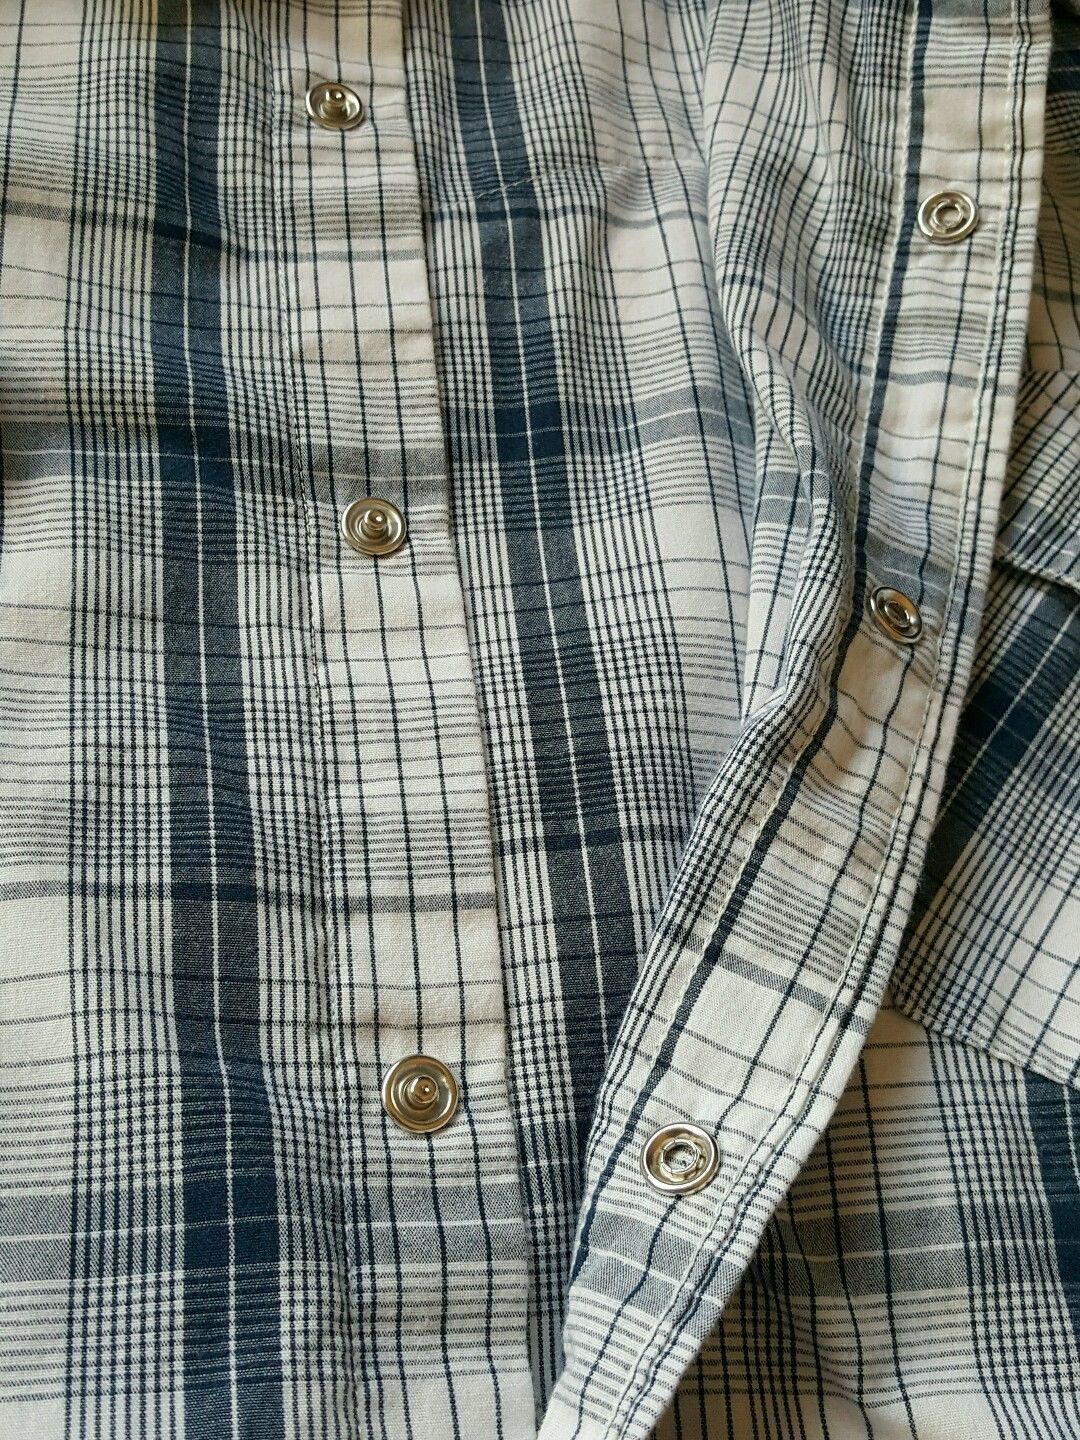 Levis Blue Plaid Western Cowboy Shirt Pearl Snaps Short Sleeve Cotton Med